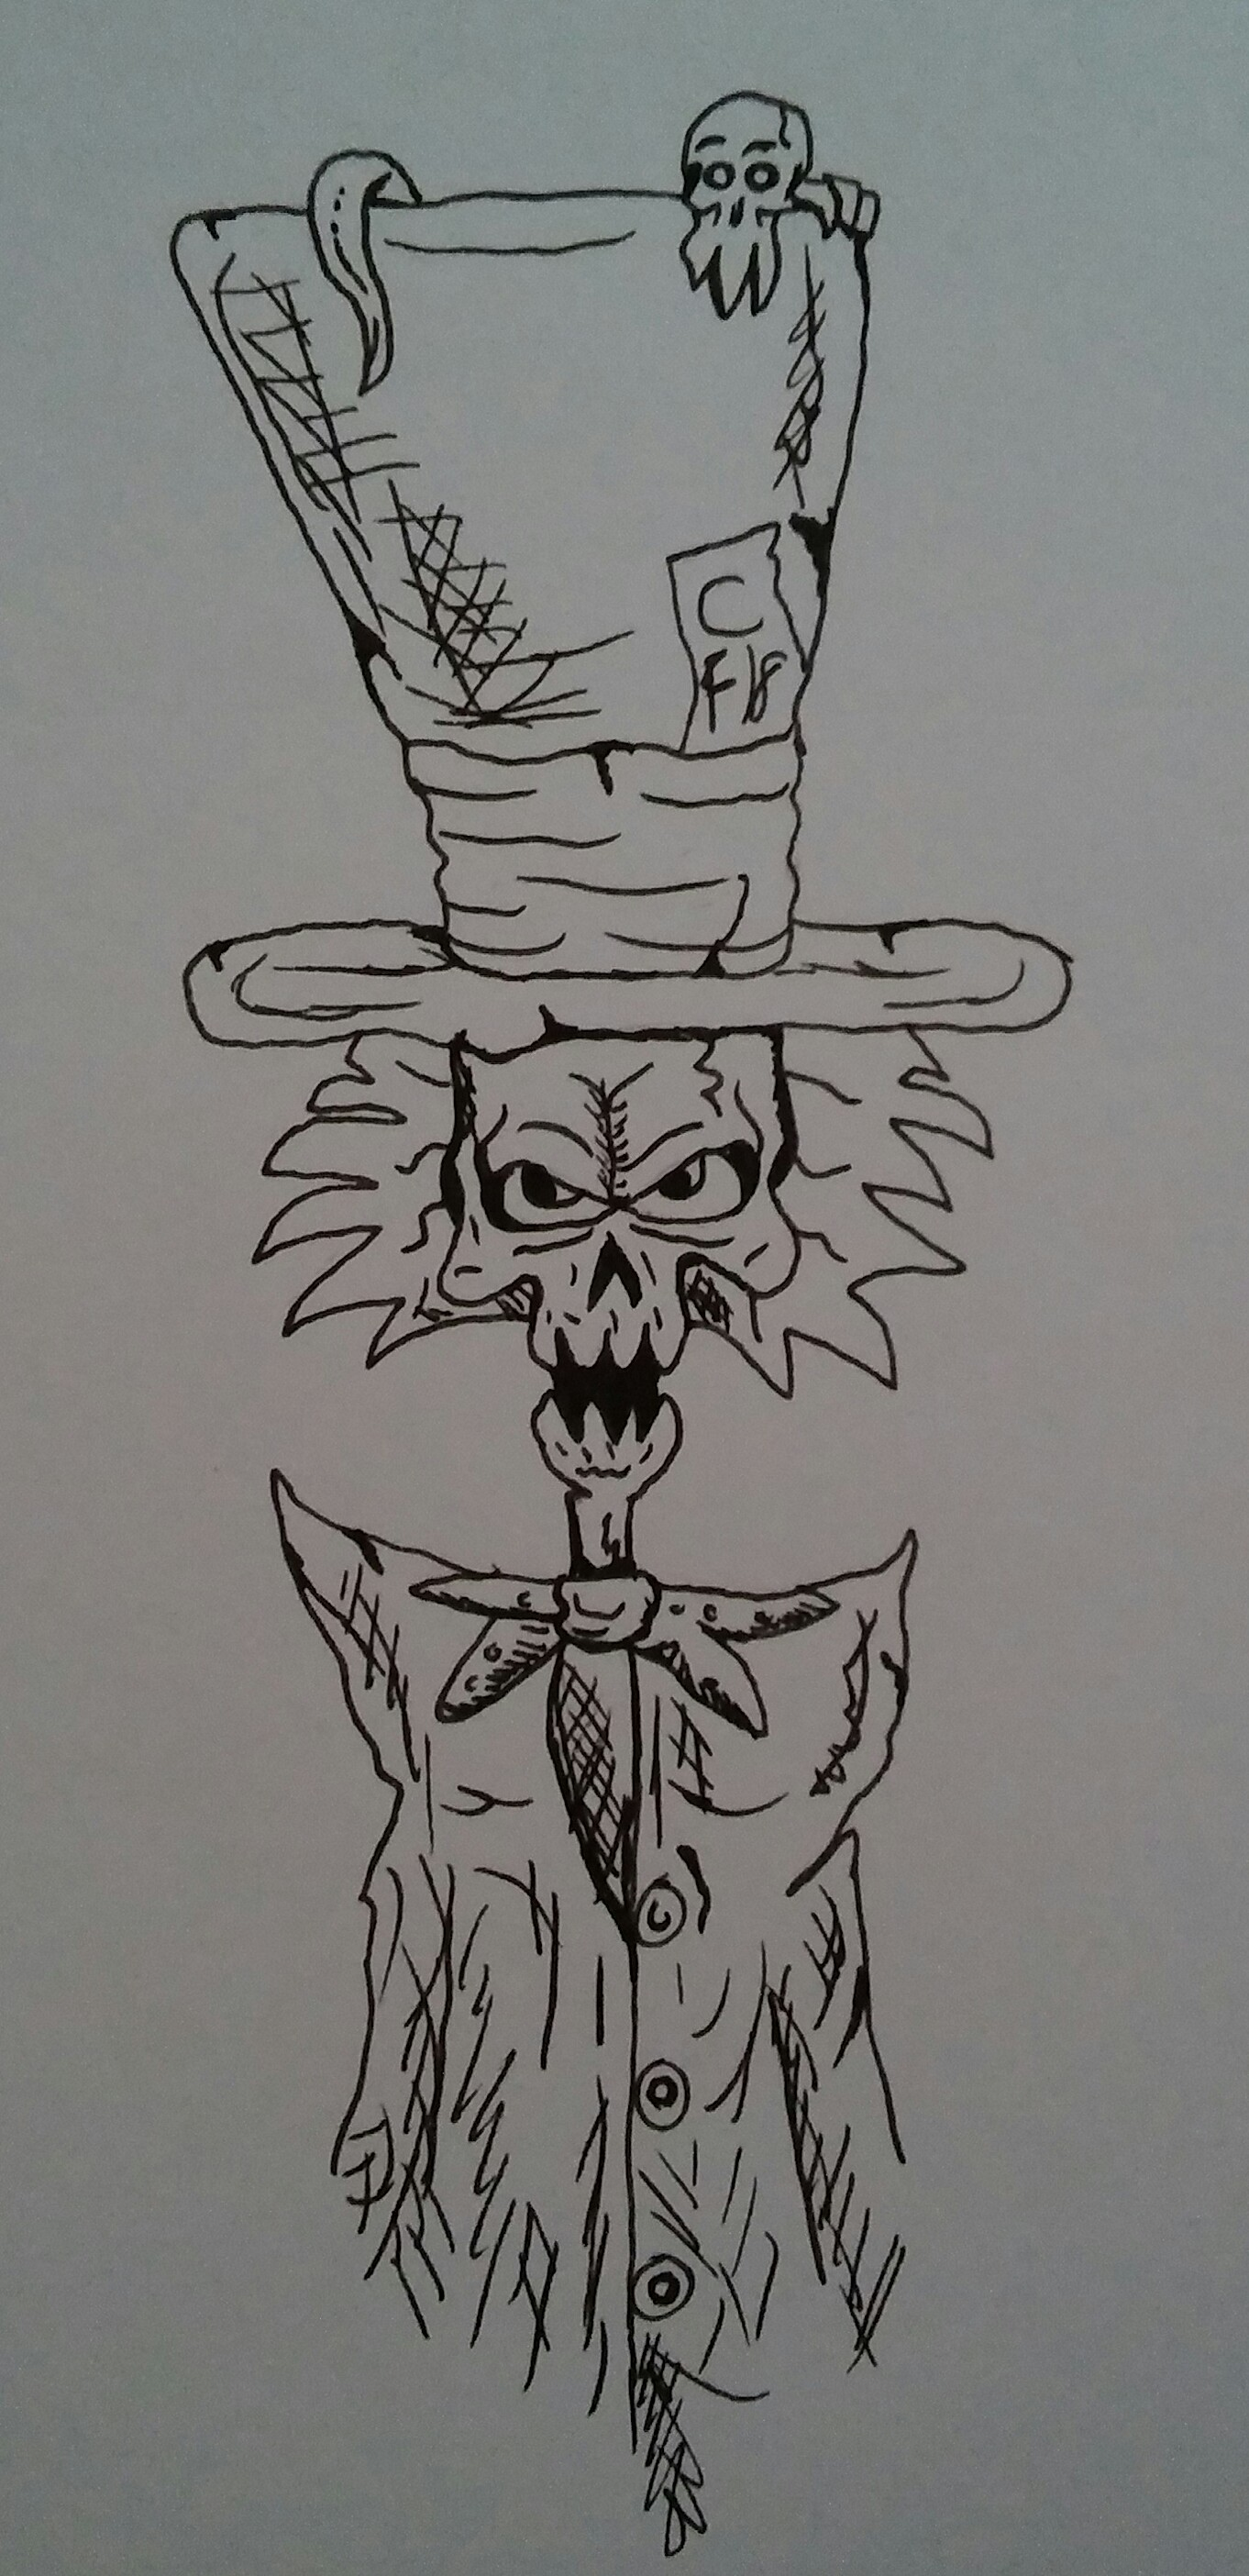 Corpse hatter